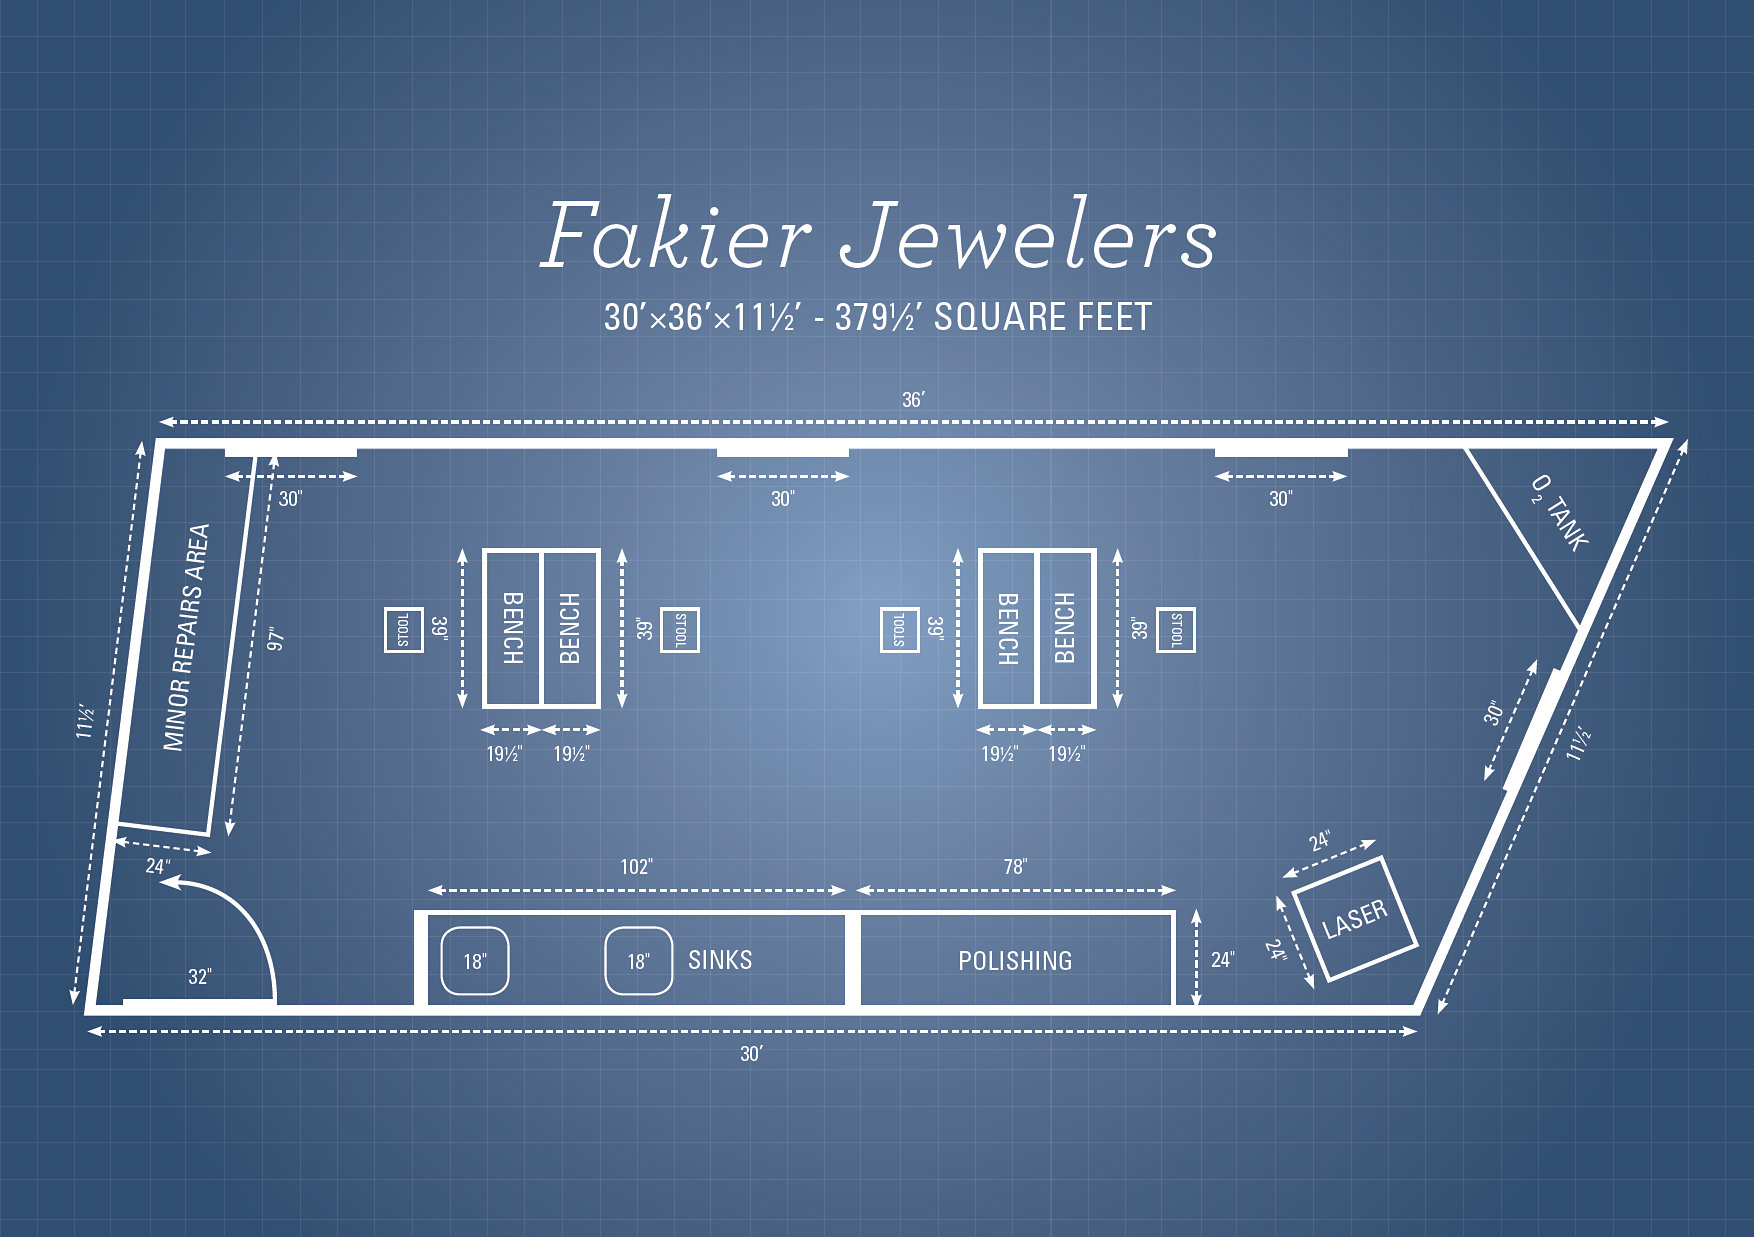 Fakier Jewelers - Blueprint